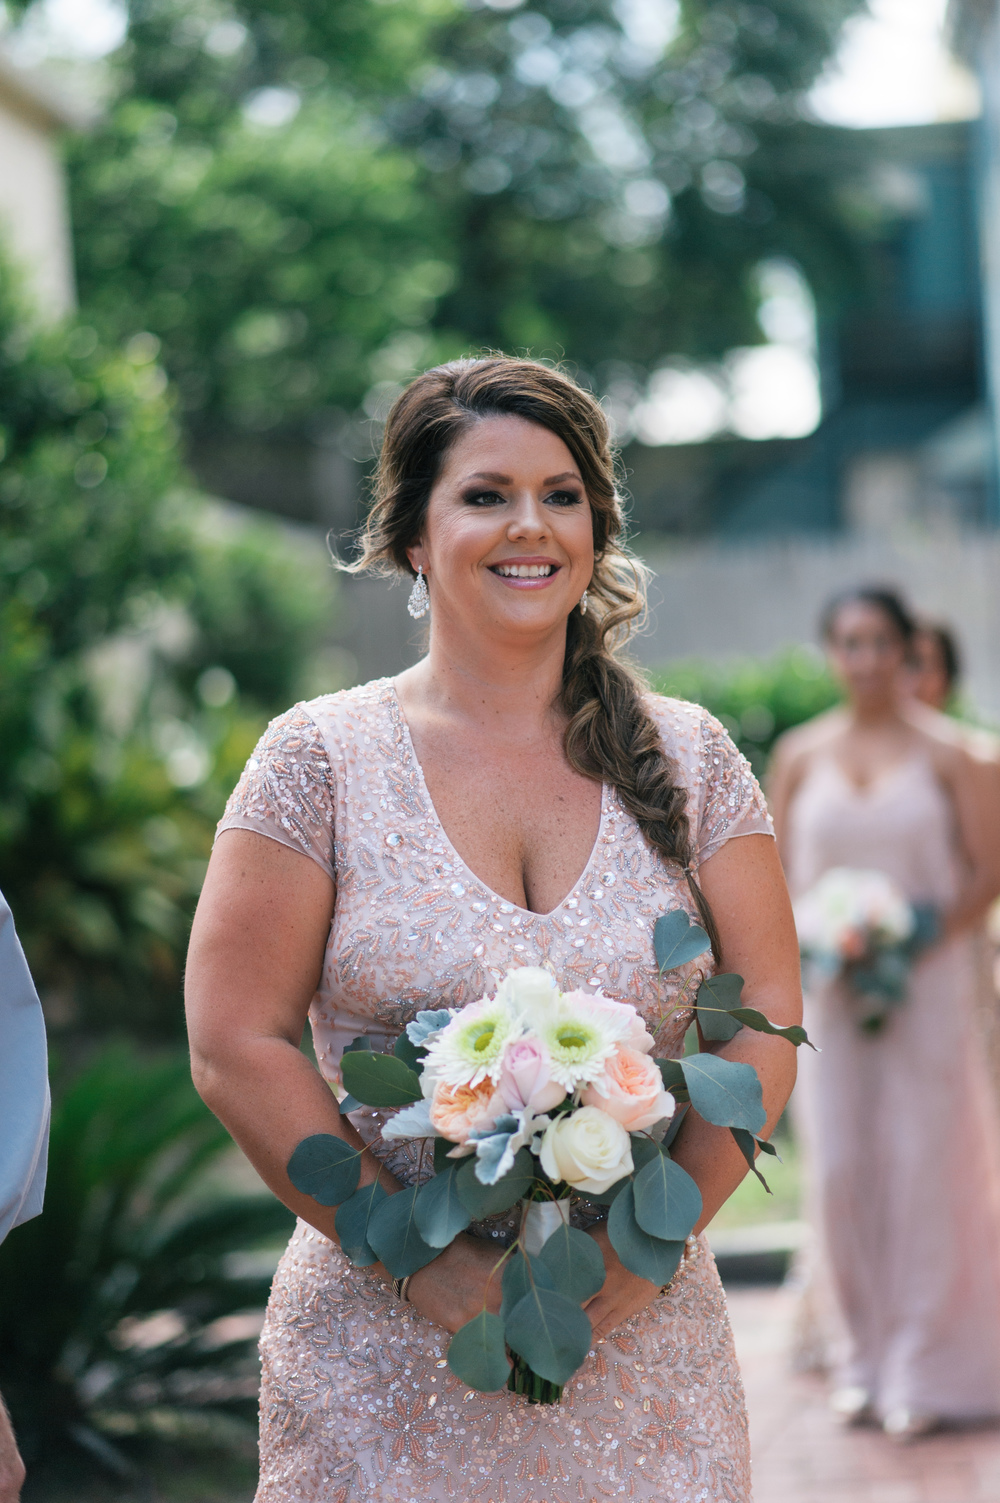 kacey-and-niall-June-4-savanna-georgia-wedding-m-newsom-photography- (270 of 961).jpg